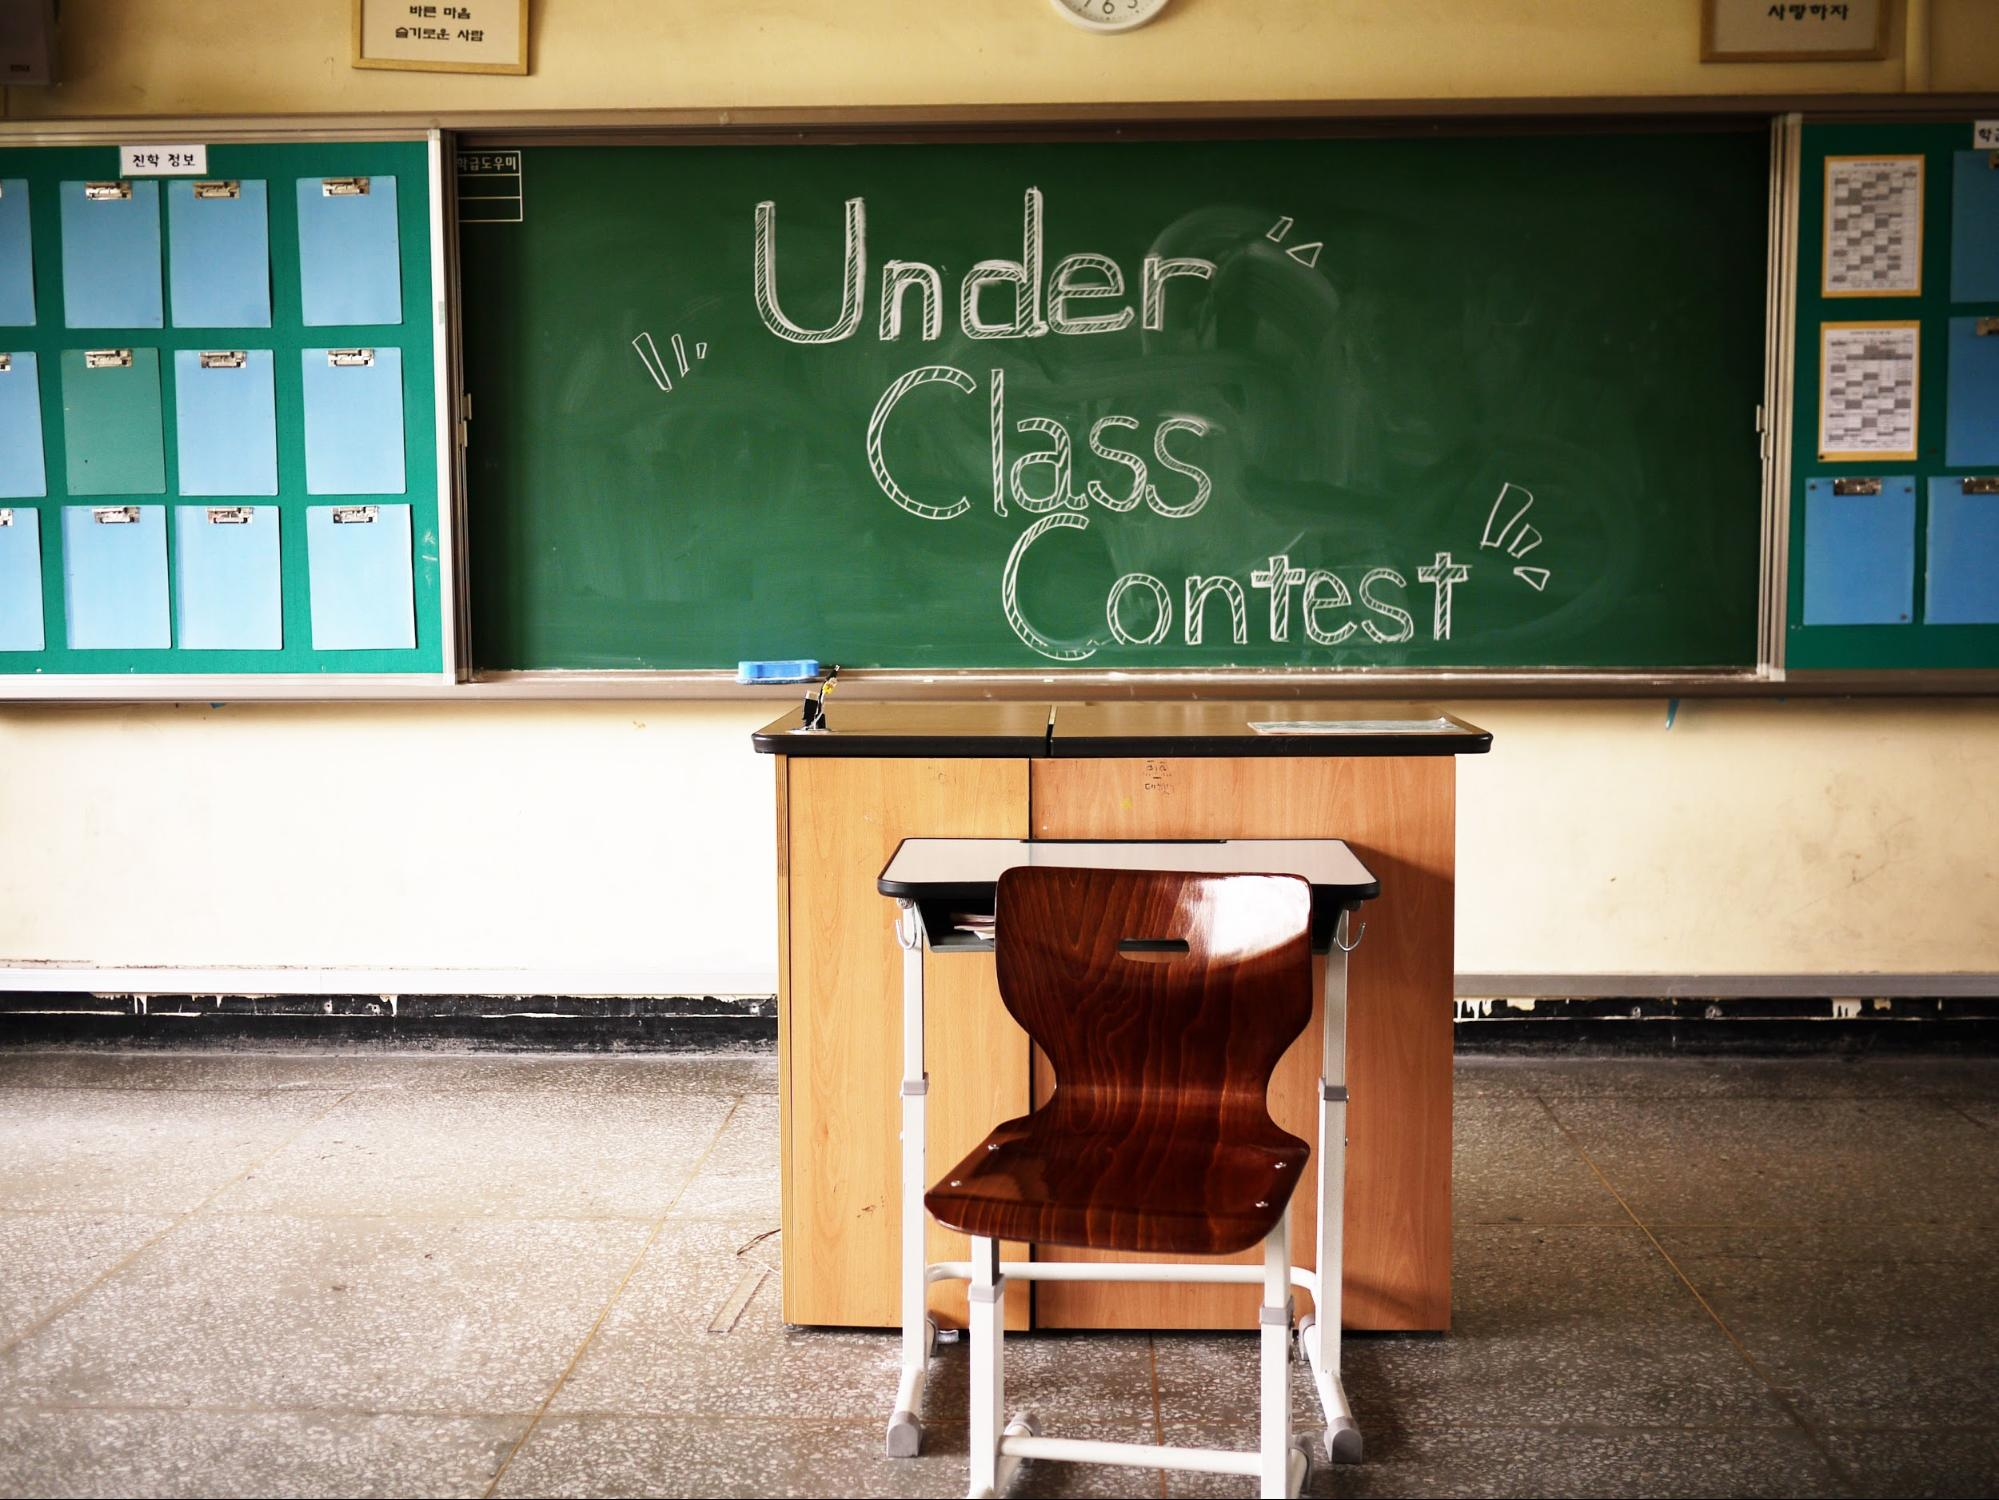 """An image of the front of a classroom. There is an empty chair and podium and the words """"Under Class Contest"""" are written on the chalkboard."""